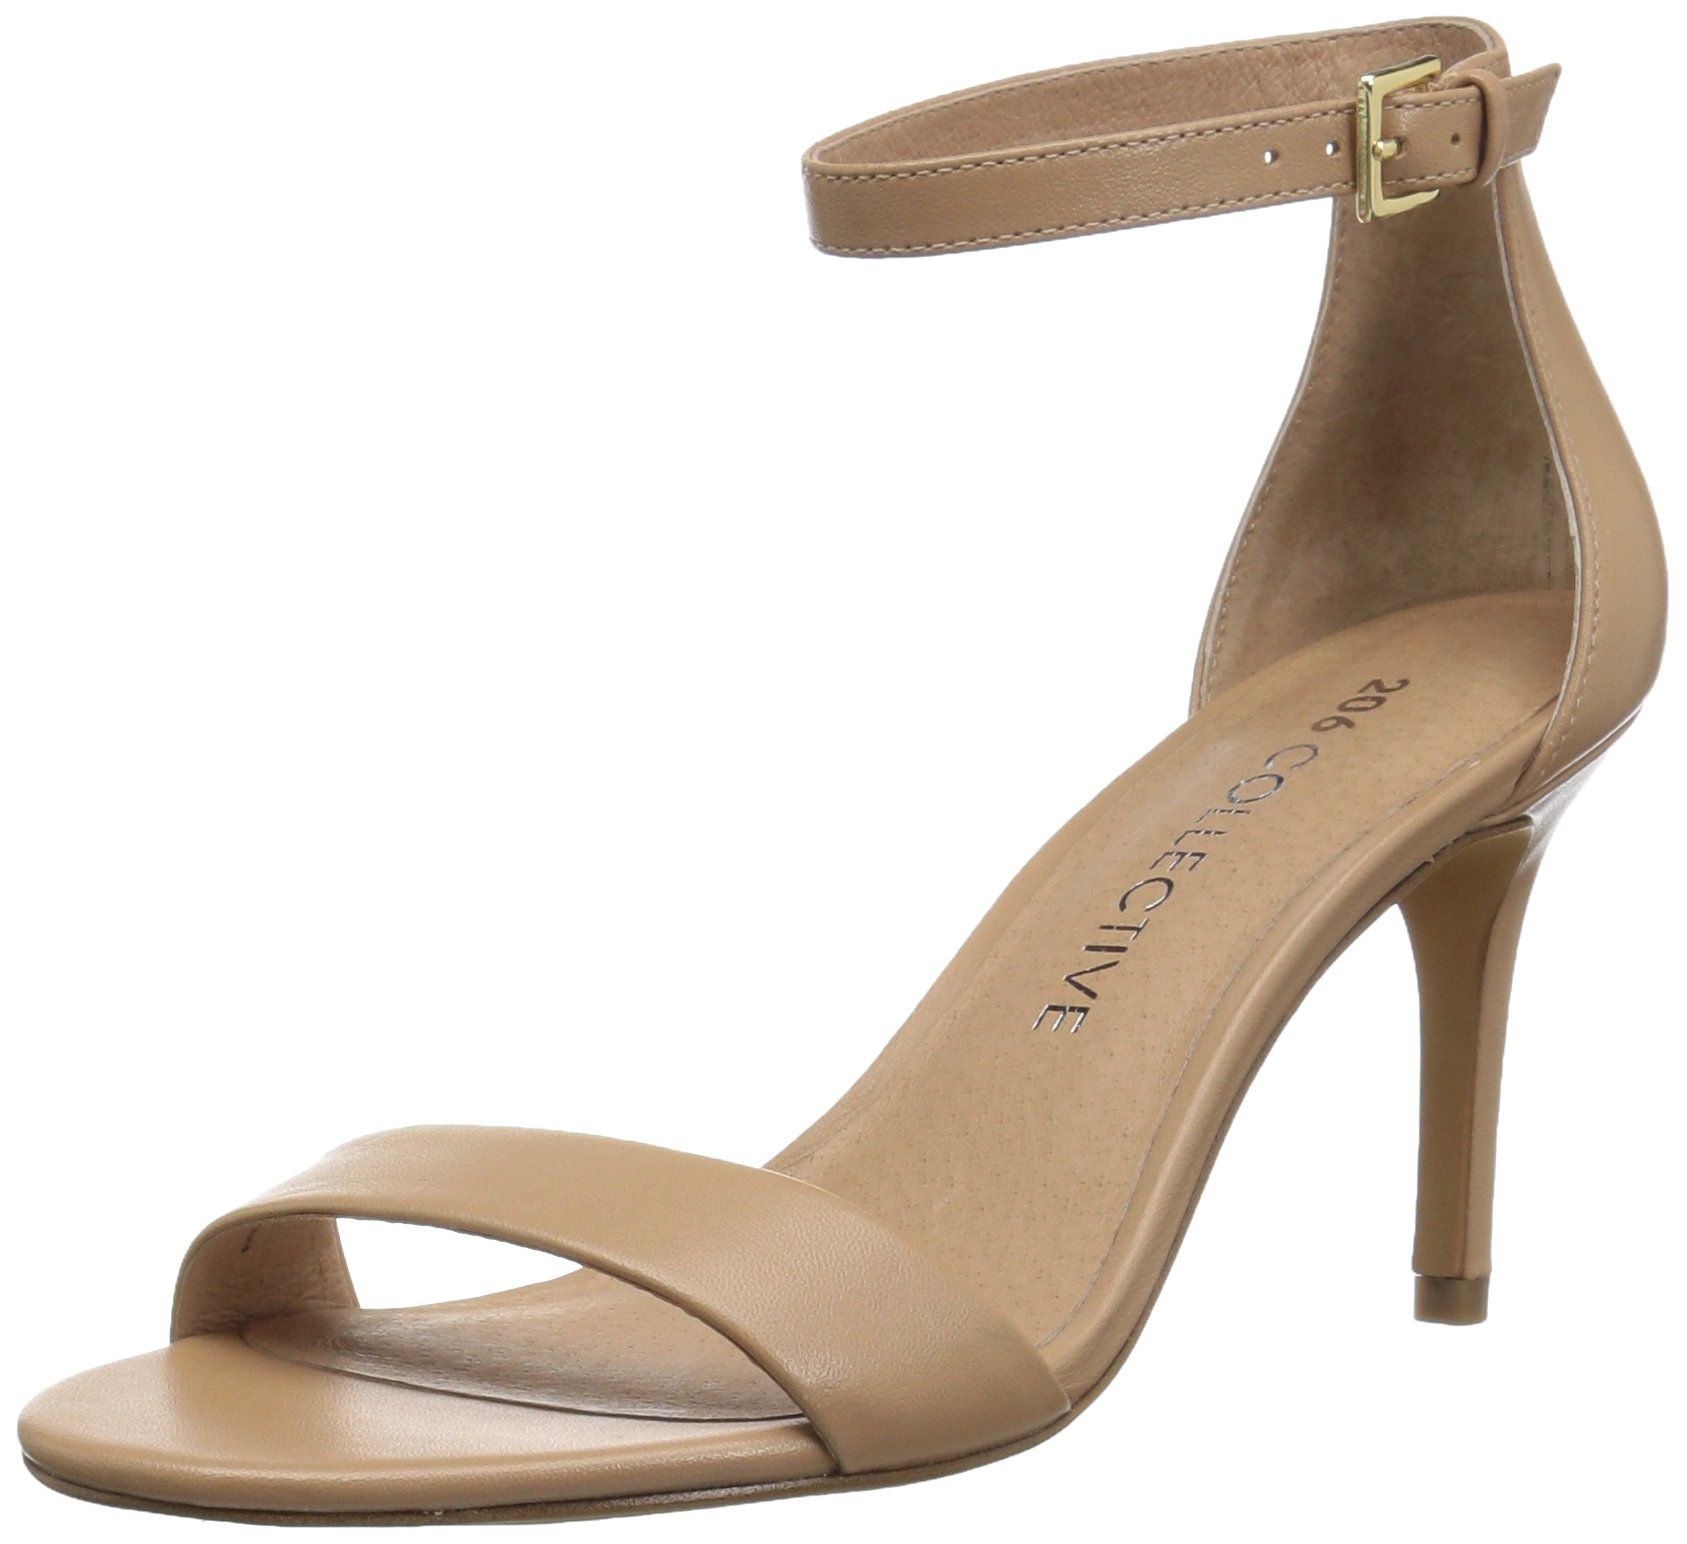 206 Collective Women's Anamarie Stiletto Heel Dress High Heeled Sandal, Neutral Leather, 6 C/D US